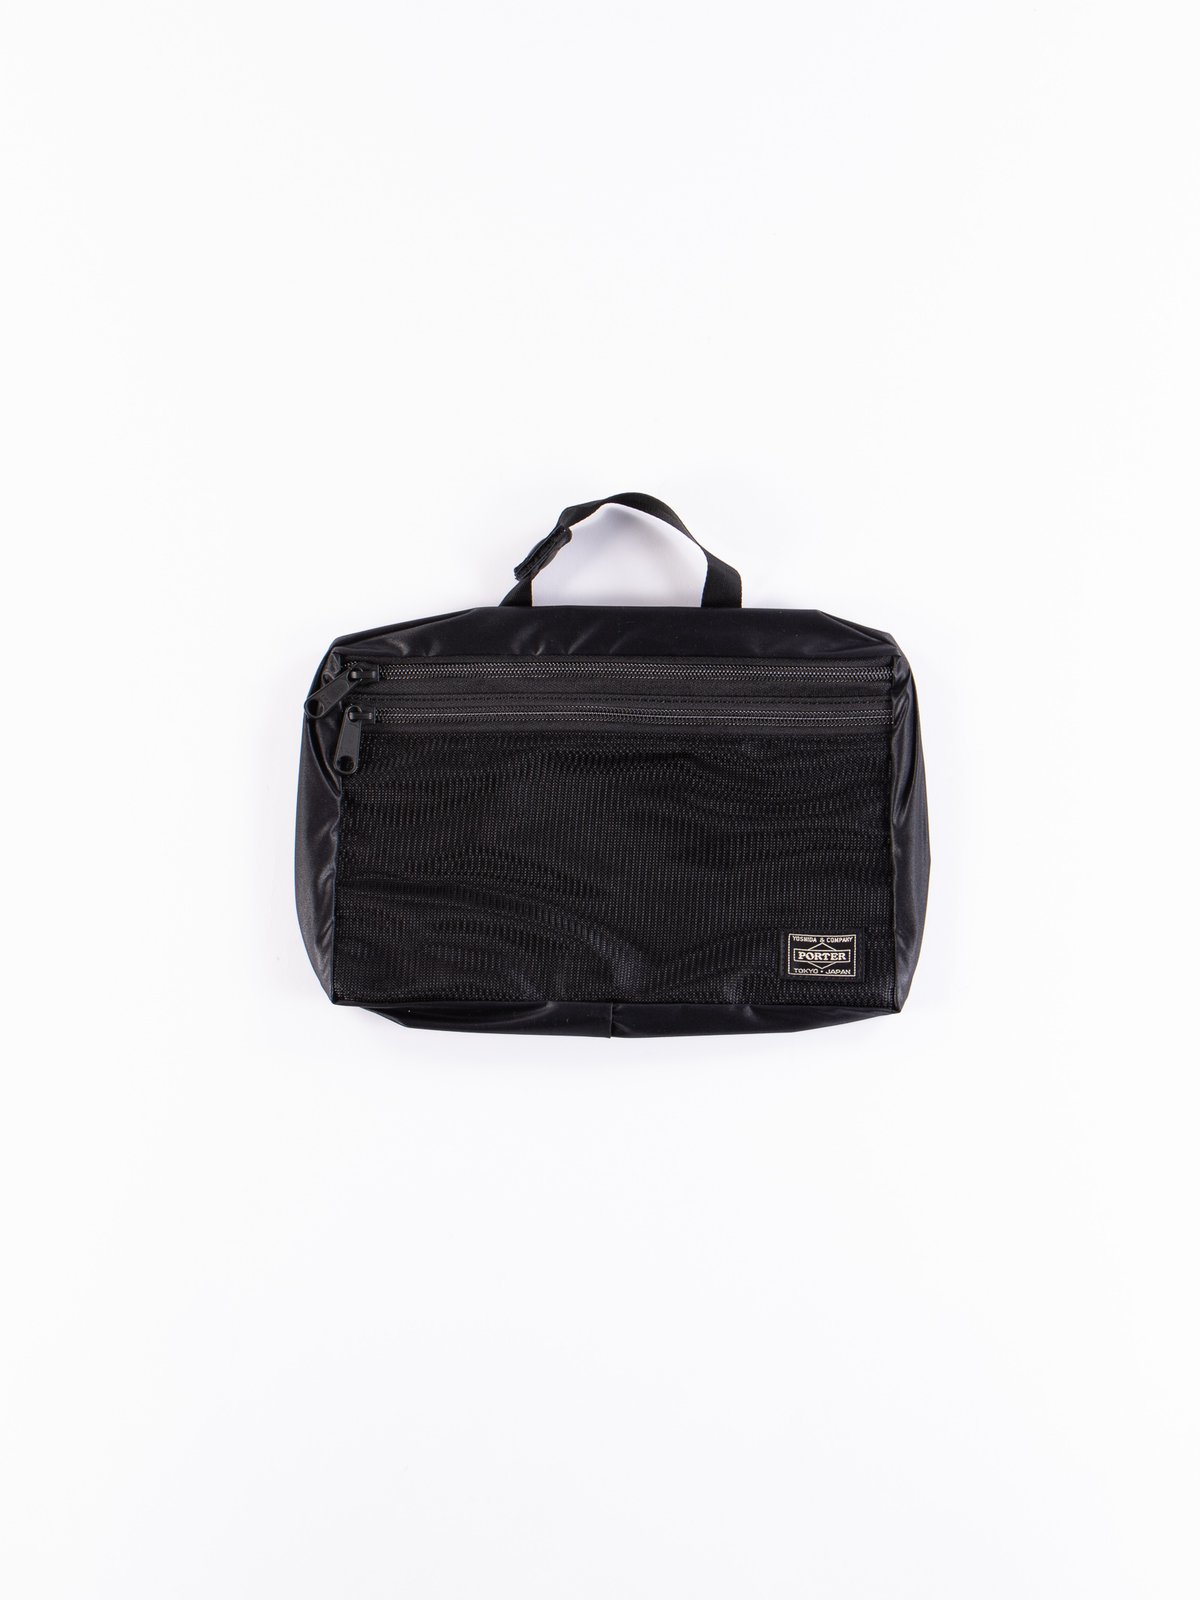 Black Snack Pack 09812 Pouch Large - Image 1